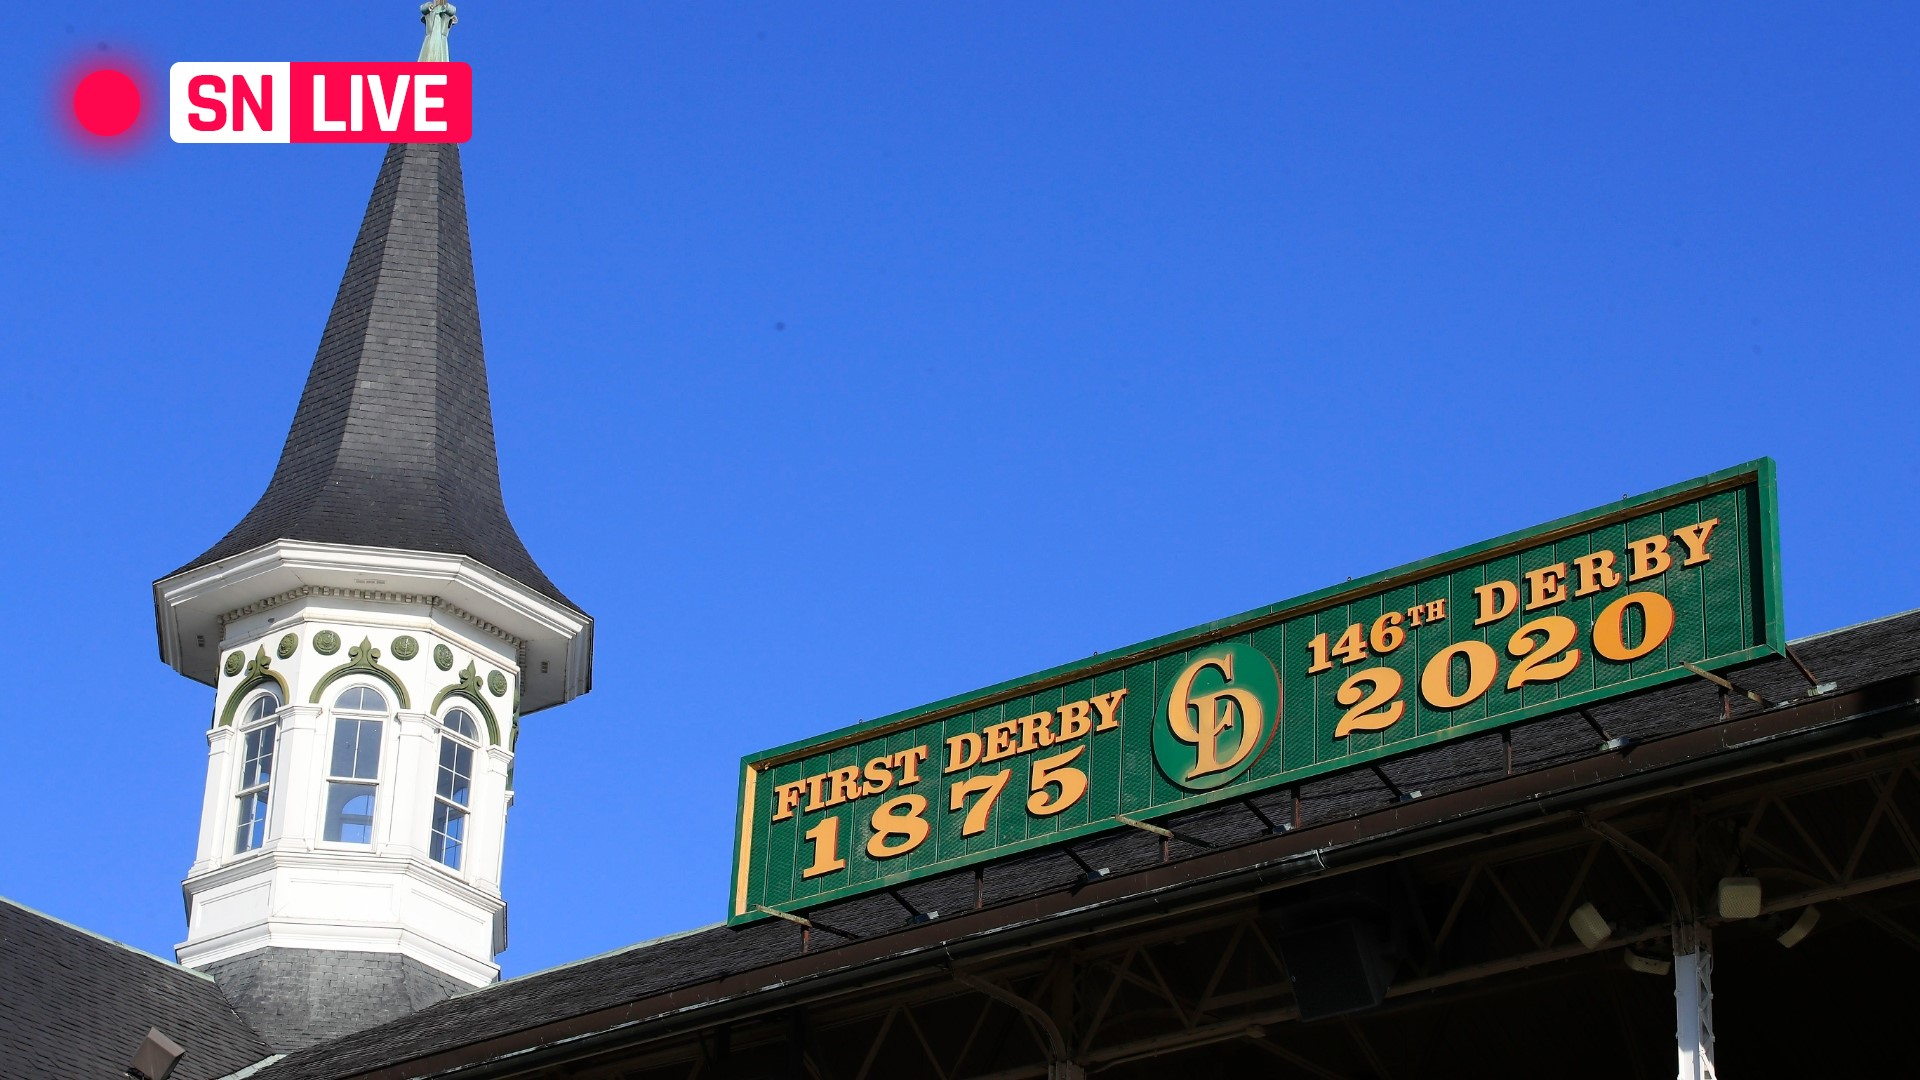 Who won the Kentucky Derby in 2020? Full results, finish order & highlights from the race